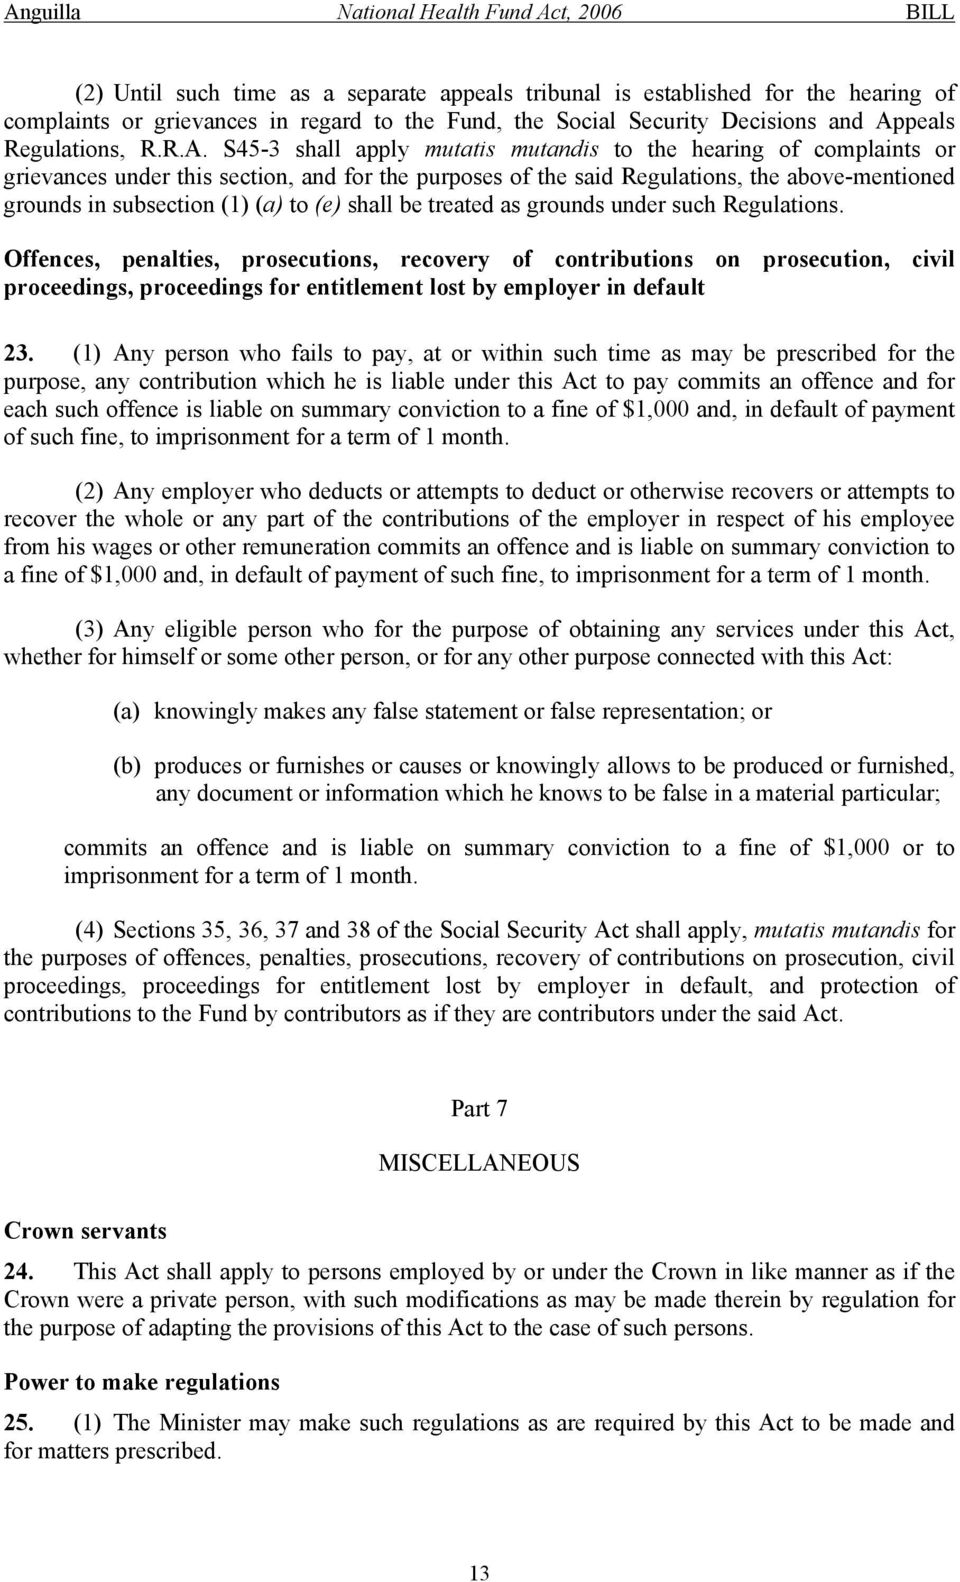 S45-3 shall apply mutatis mutandis to the hearing of complaints or grievances under this section, and for the purposes of the said Regulations, the above-mentioned grounds in subsection (1) (a) to